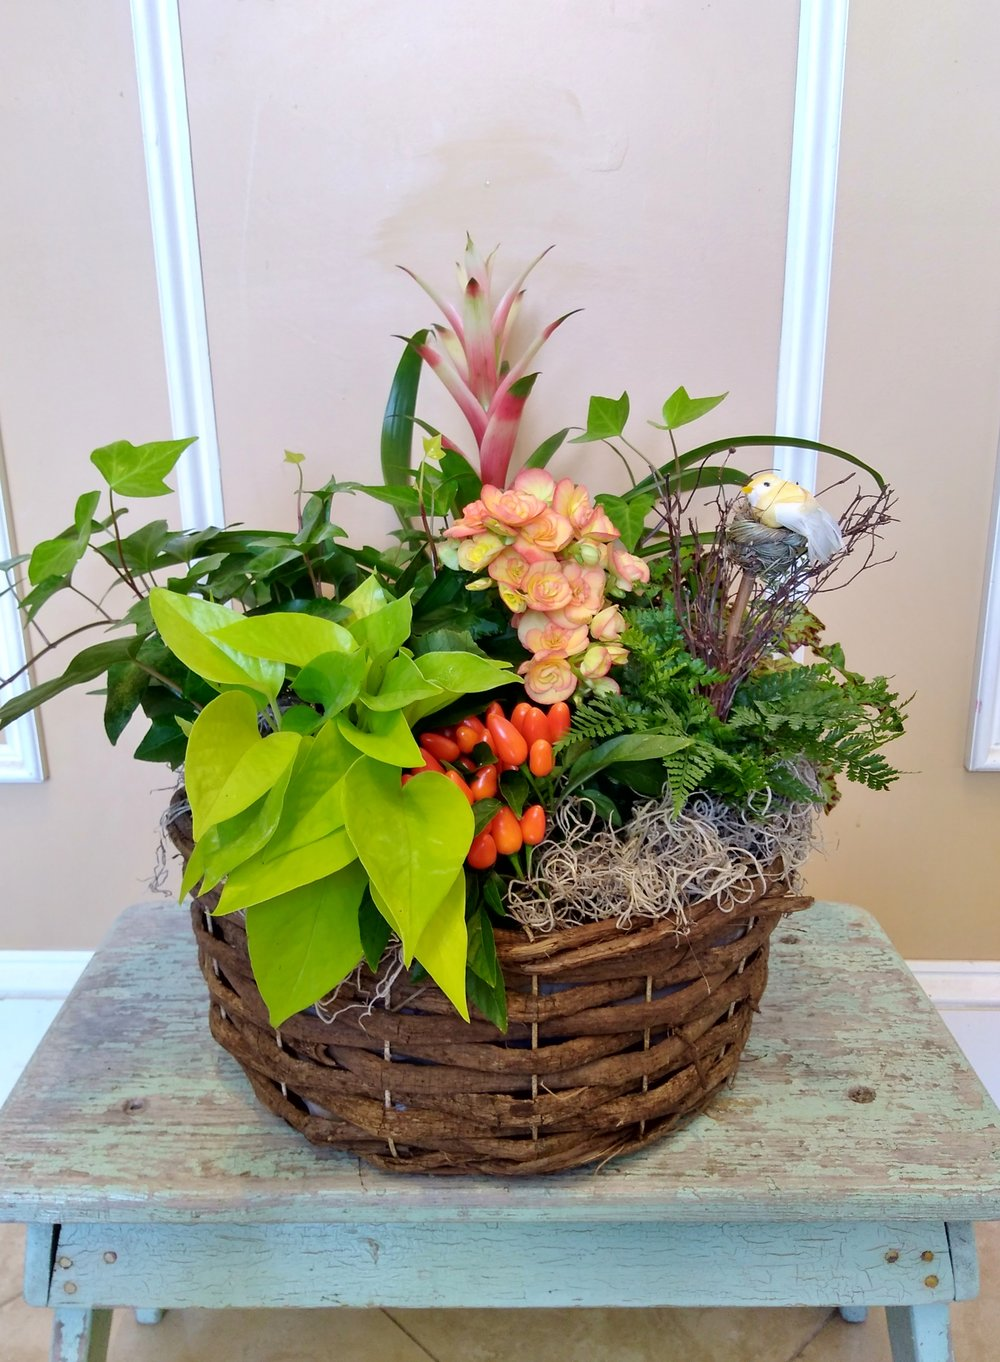 C2   $60 - $125 European plant basket. $60 as shown.